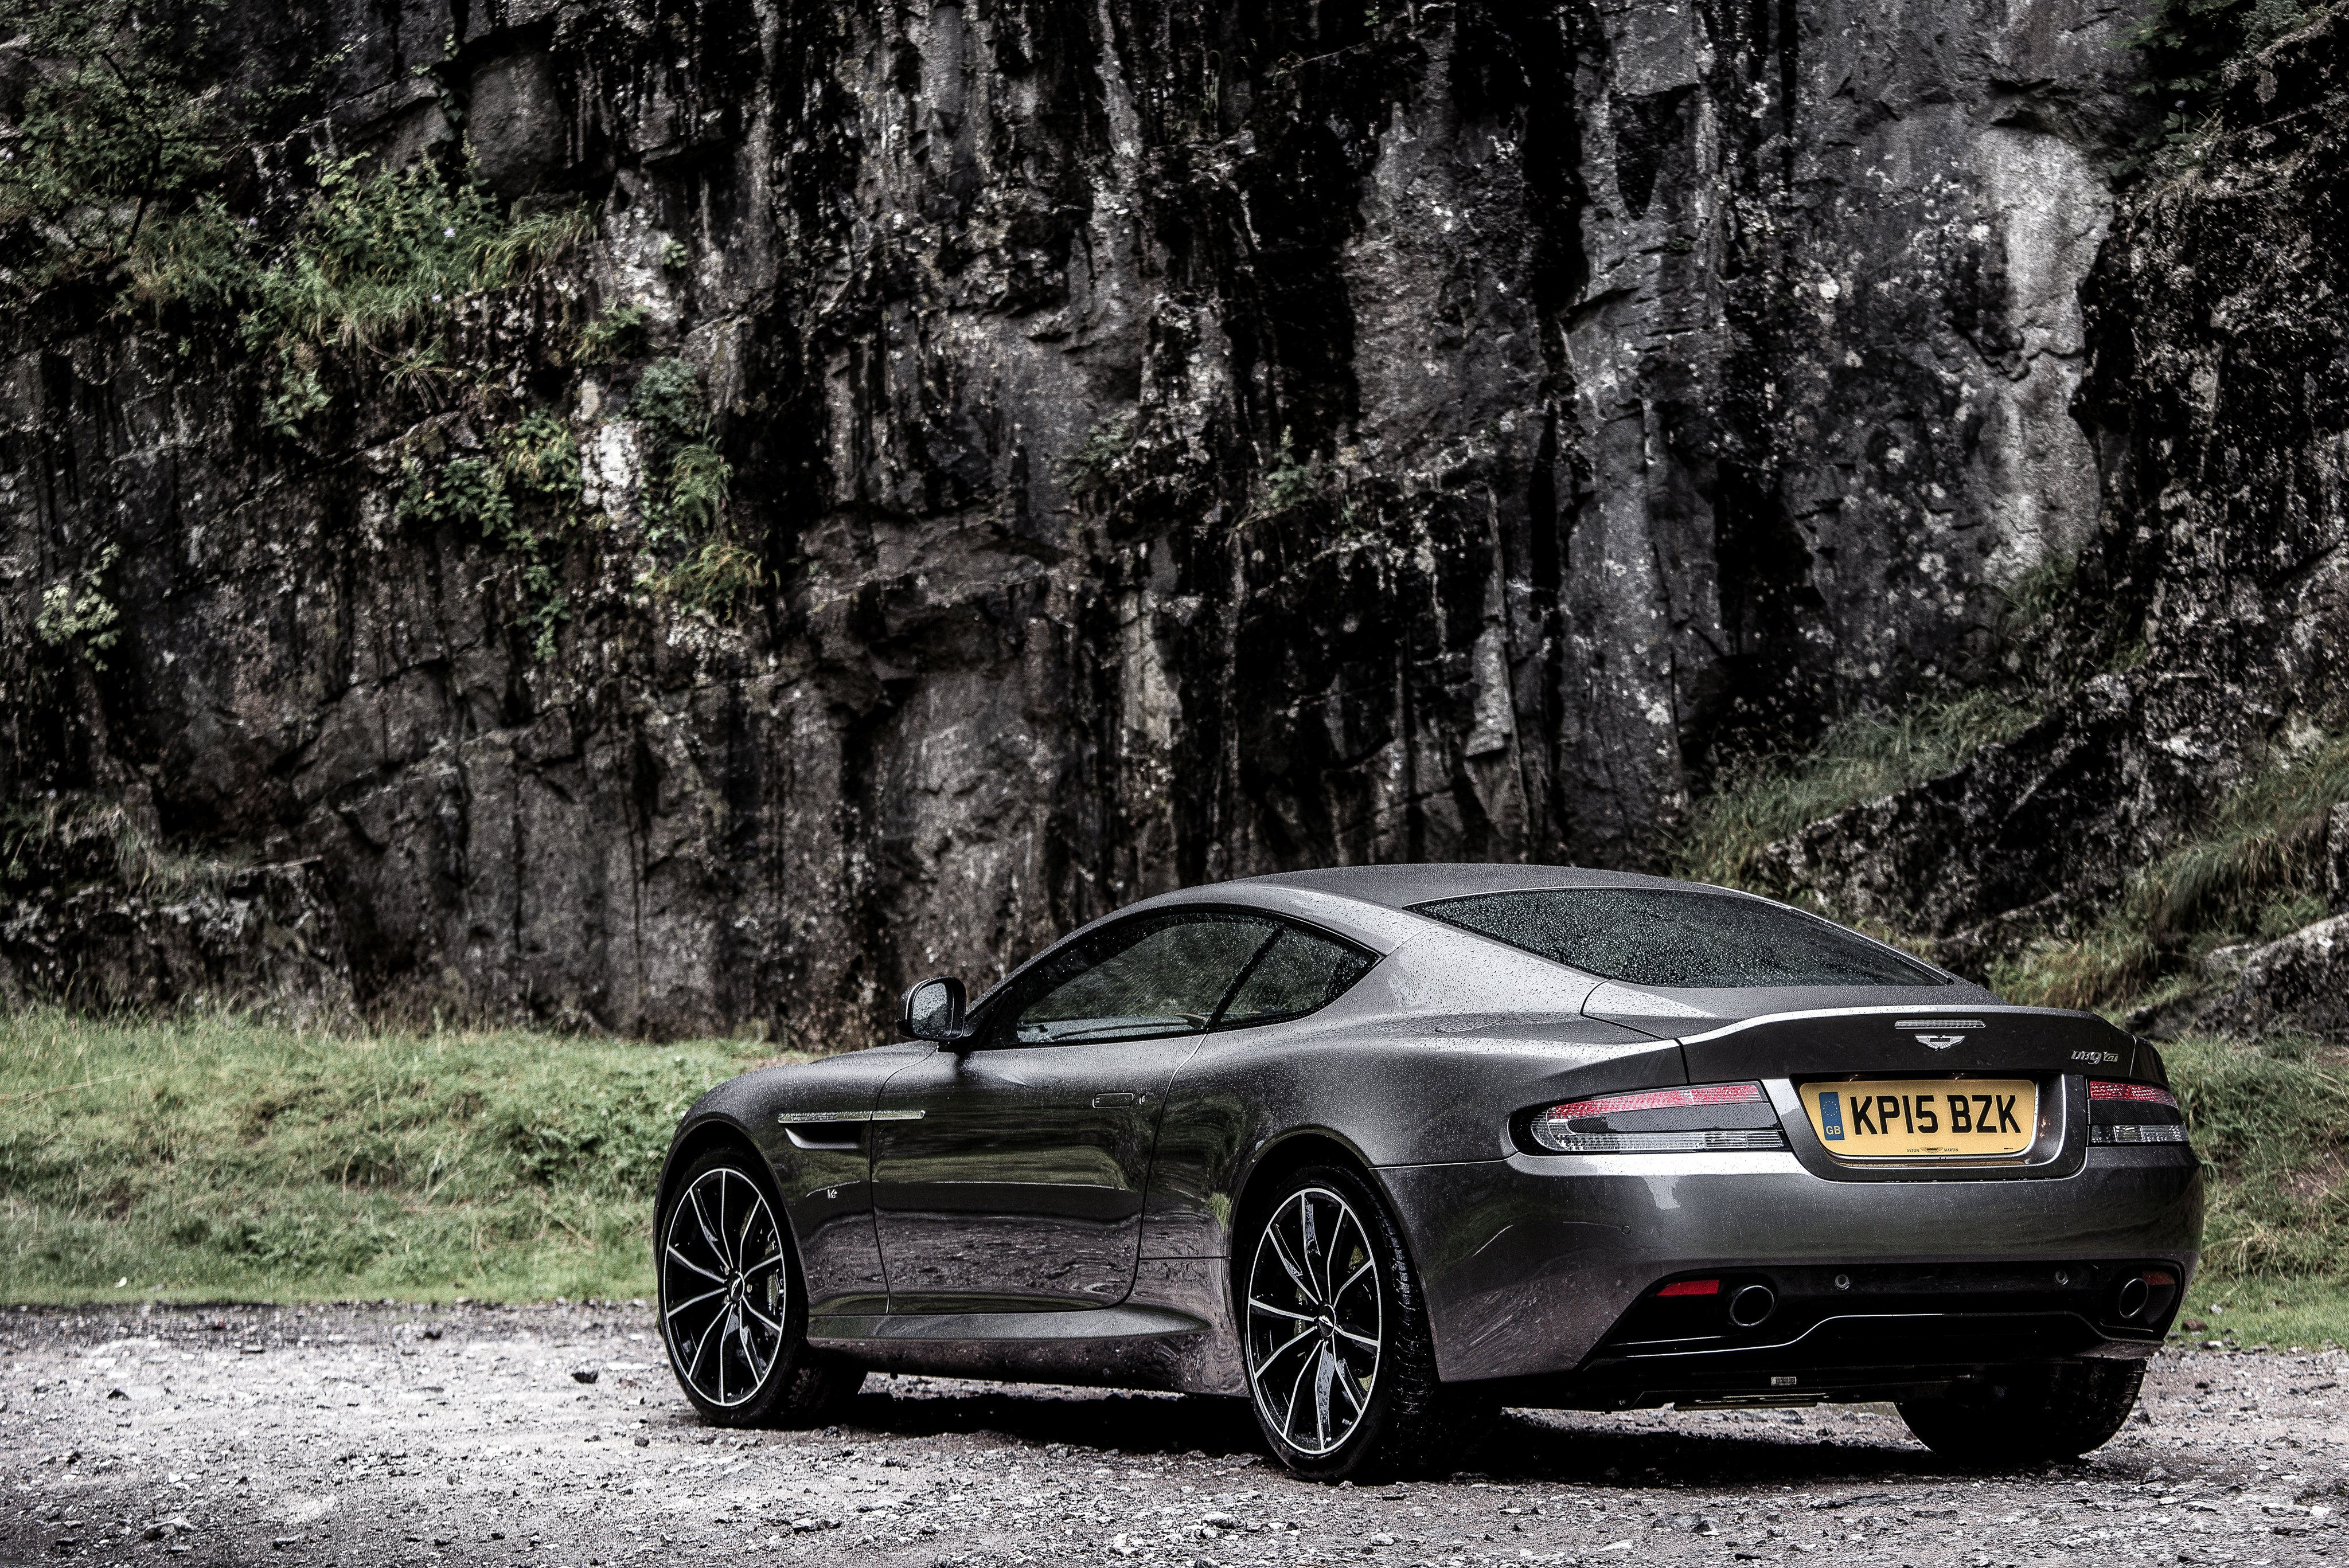 2015 aston martin db9 g-t uk-spec wallpaper | 4096x2735 | 782384